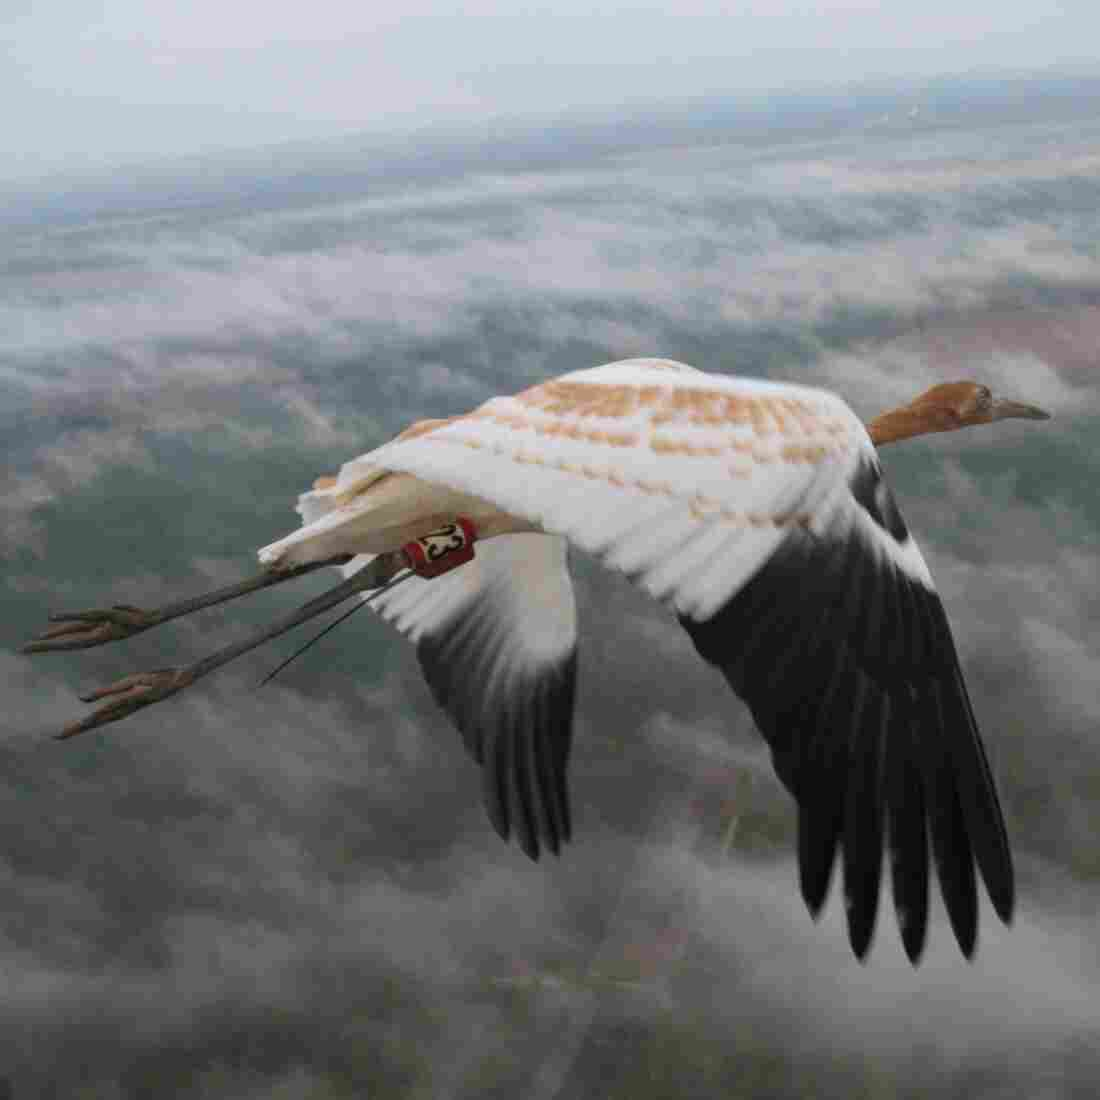 This young whooping crane is on its first fall migration, guided by an Operation Migration ultralight aircraft. Each whooper in this population wears an identification band, and many carry tracking devices that record their movements in detail.